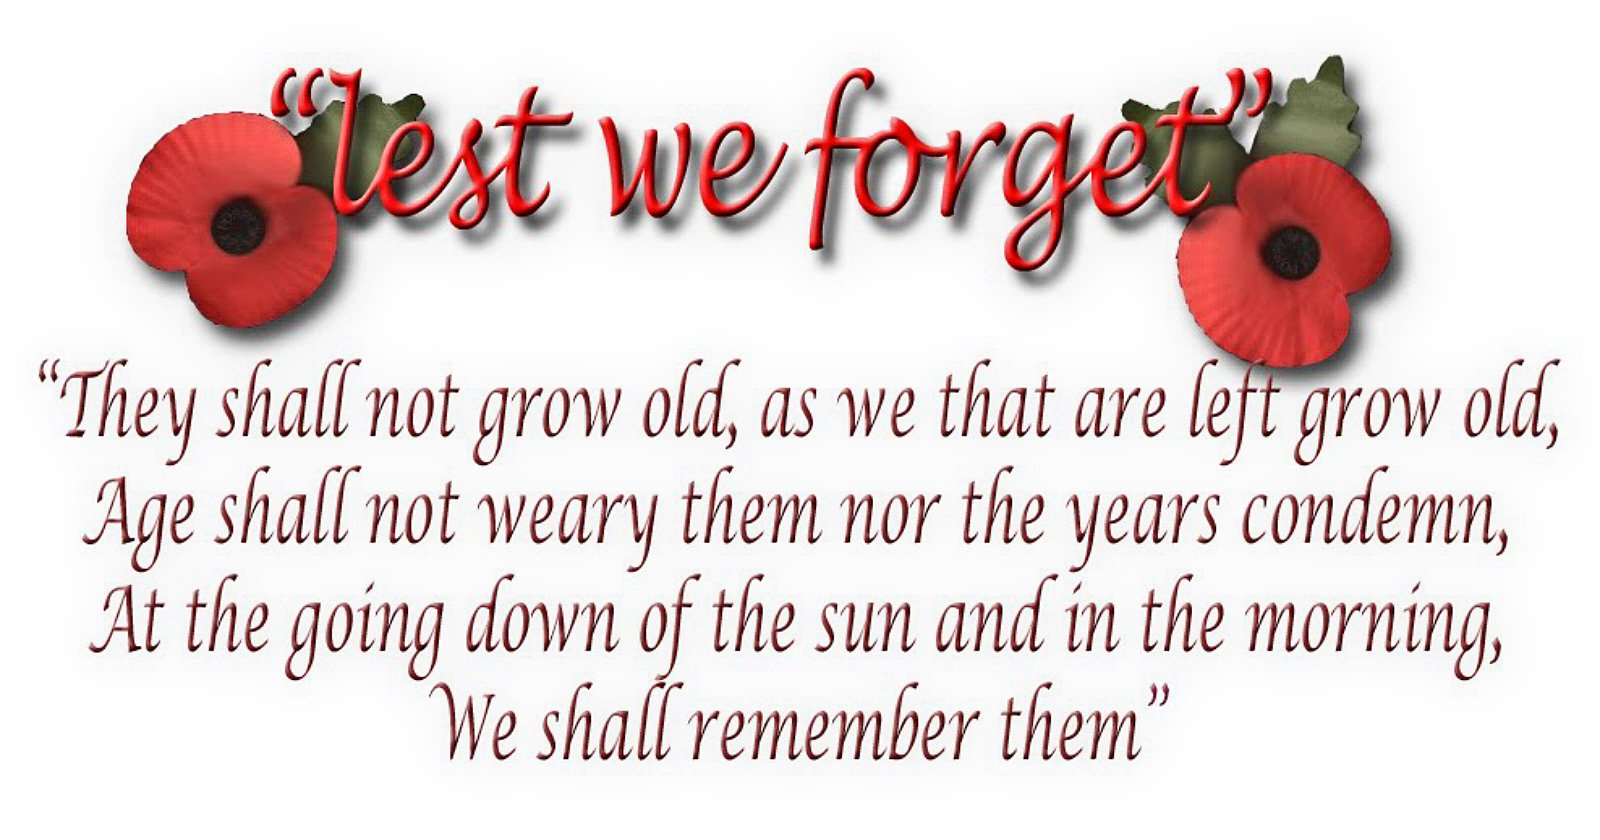 Lest we forget 2